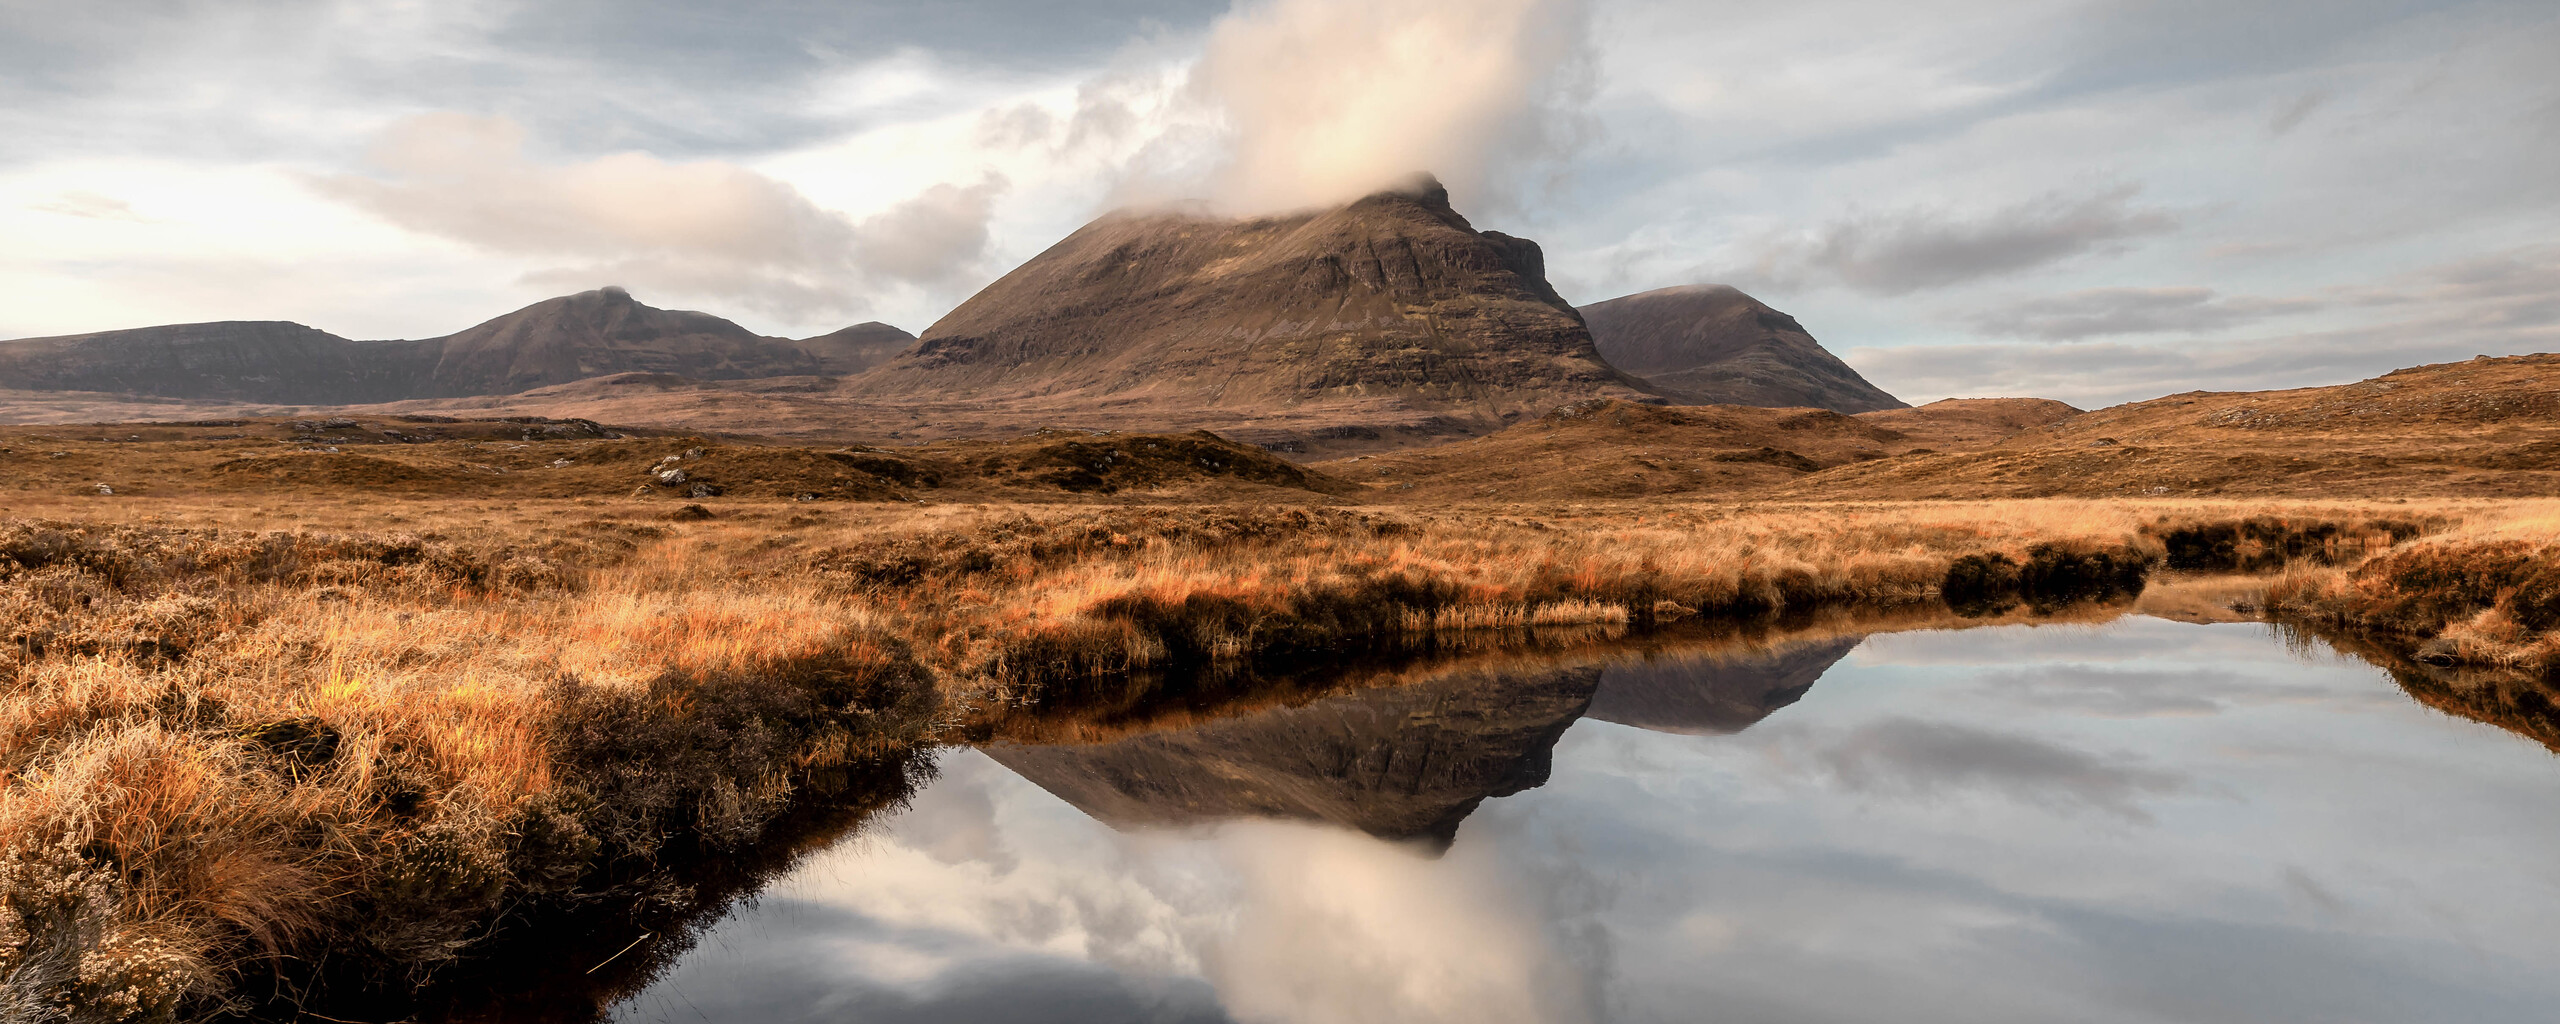 reflections-at-quinag-mountains-5k-2i.jpg